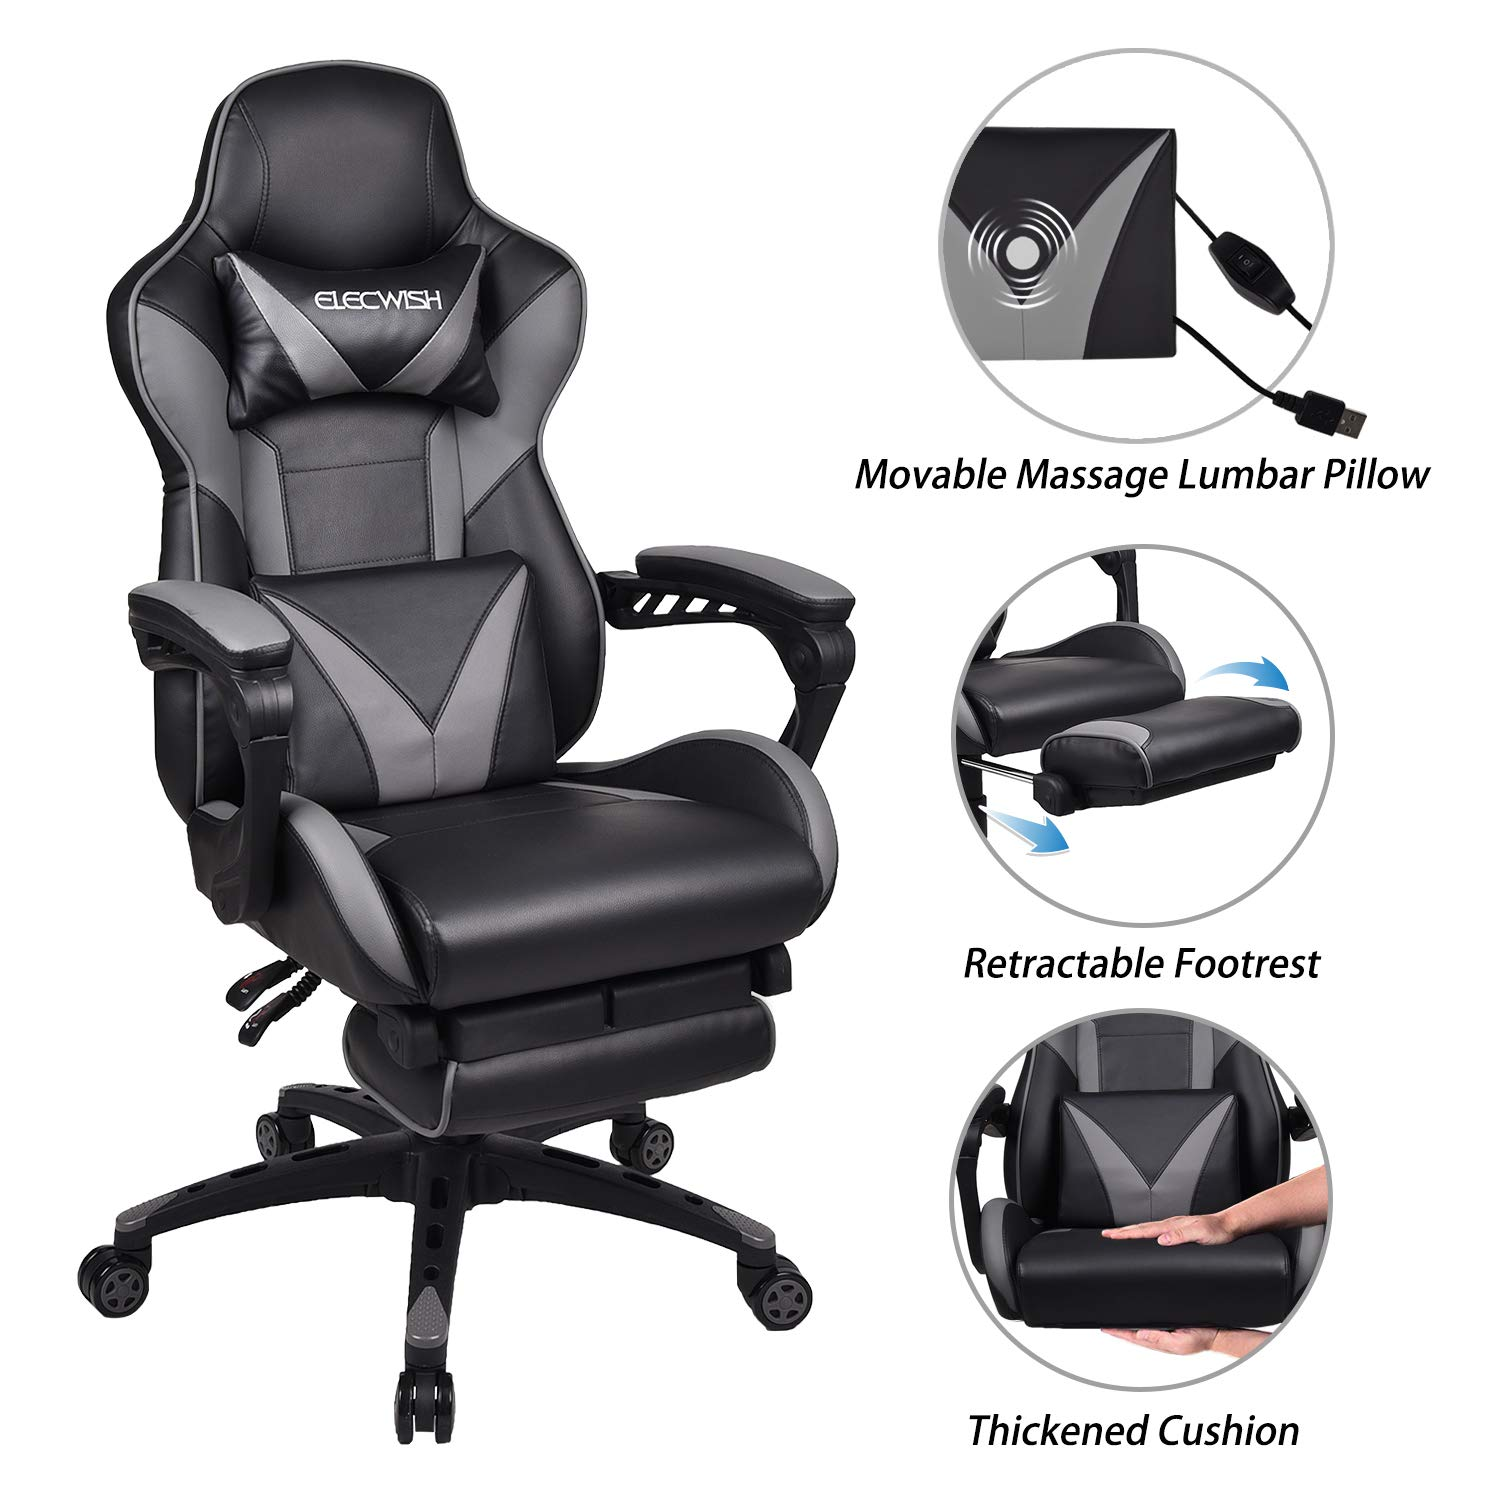 ELECWISH Massage Computer Gaming Chair Reclining Ergonomic Racing Office Chair with Footrest High Back PU Leather Gaming Desk Chair Large Size E-Sport Chair with Headrest and Lumba Support (Grey) by ELECWISH